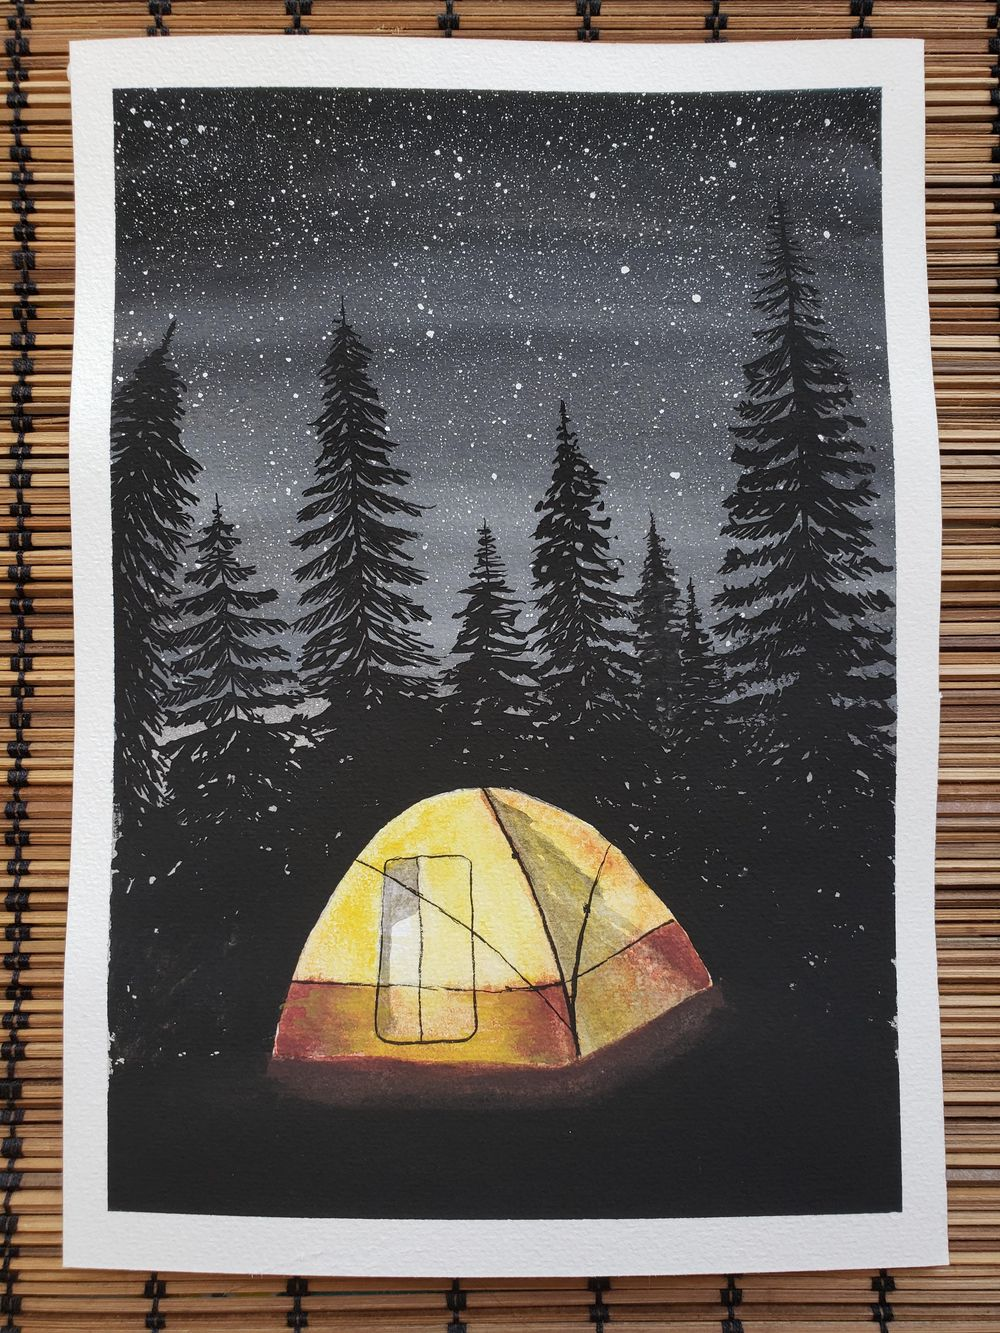 camping - image 1 - student project